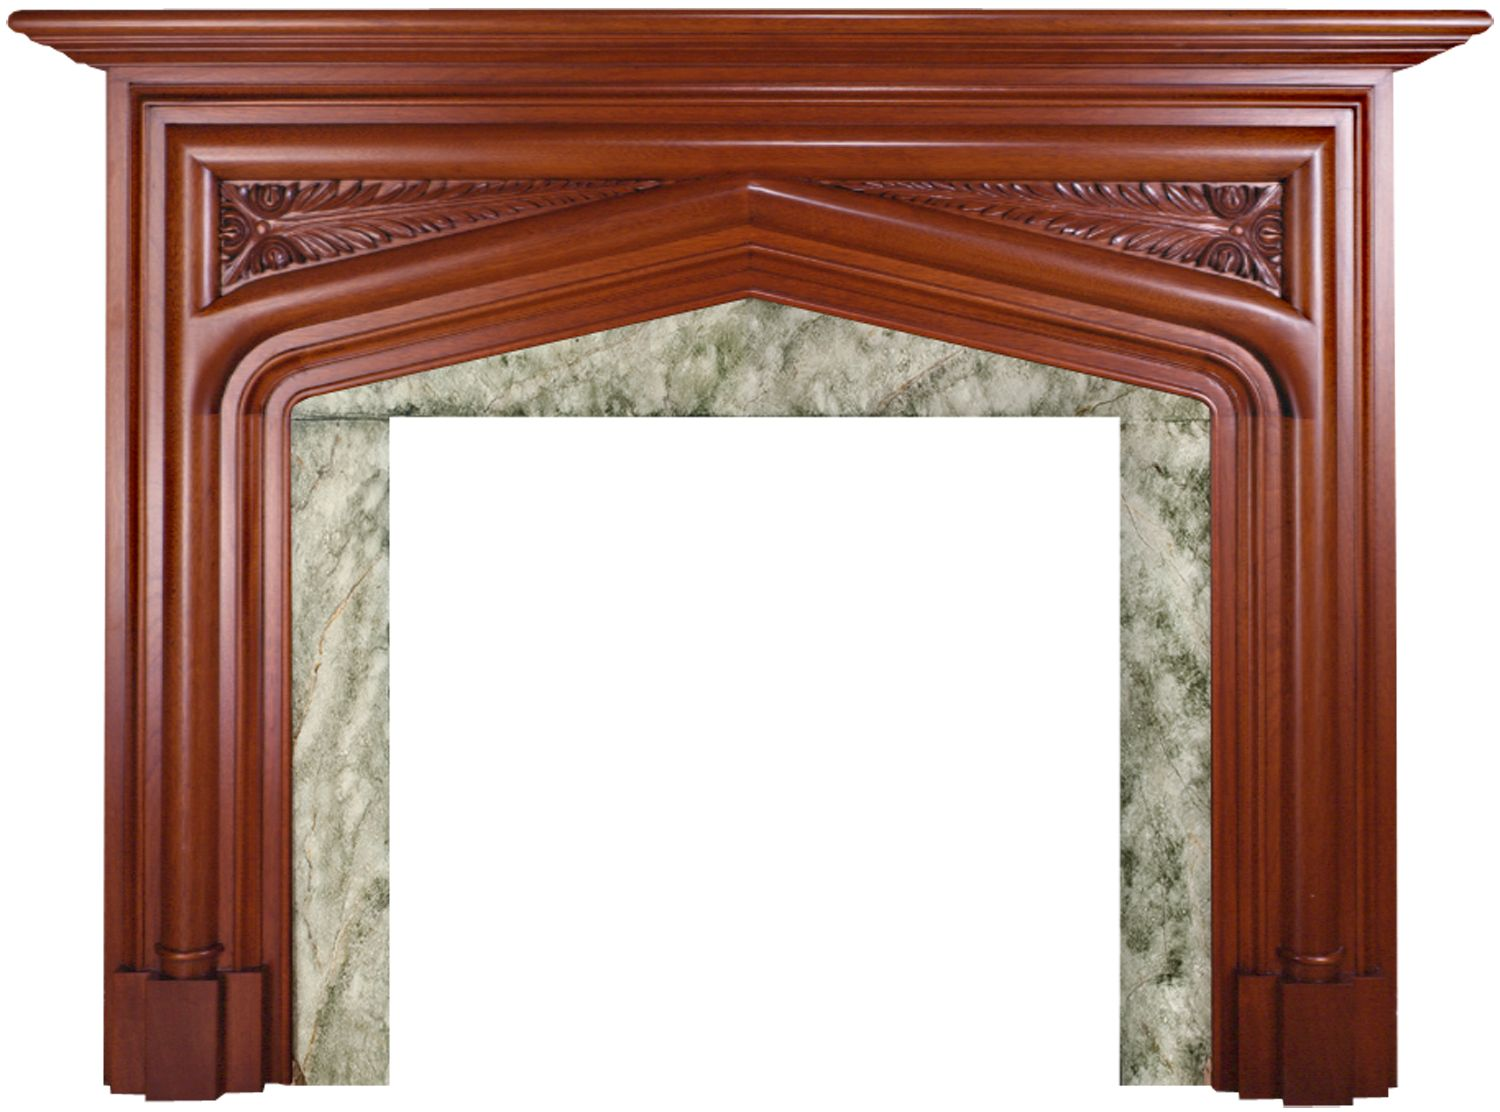 gothic tudor style wood fireplace mantel with hand carved apron and rh pinterest com